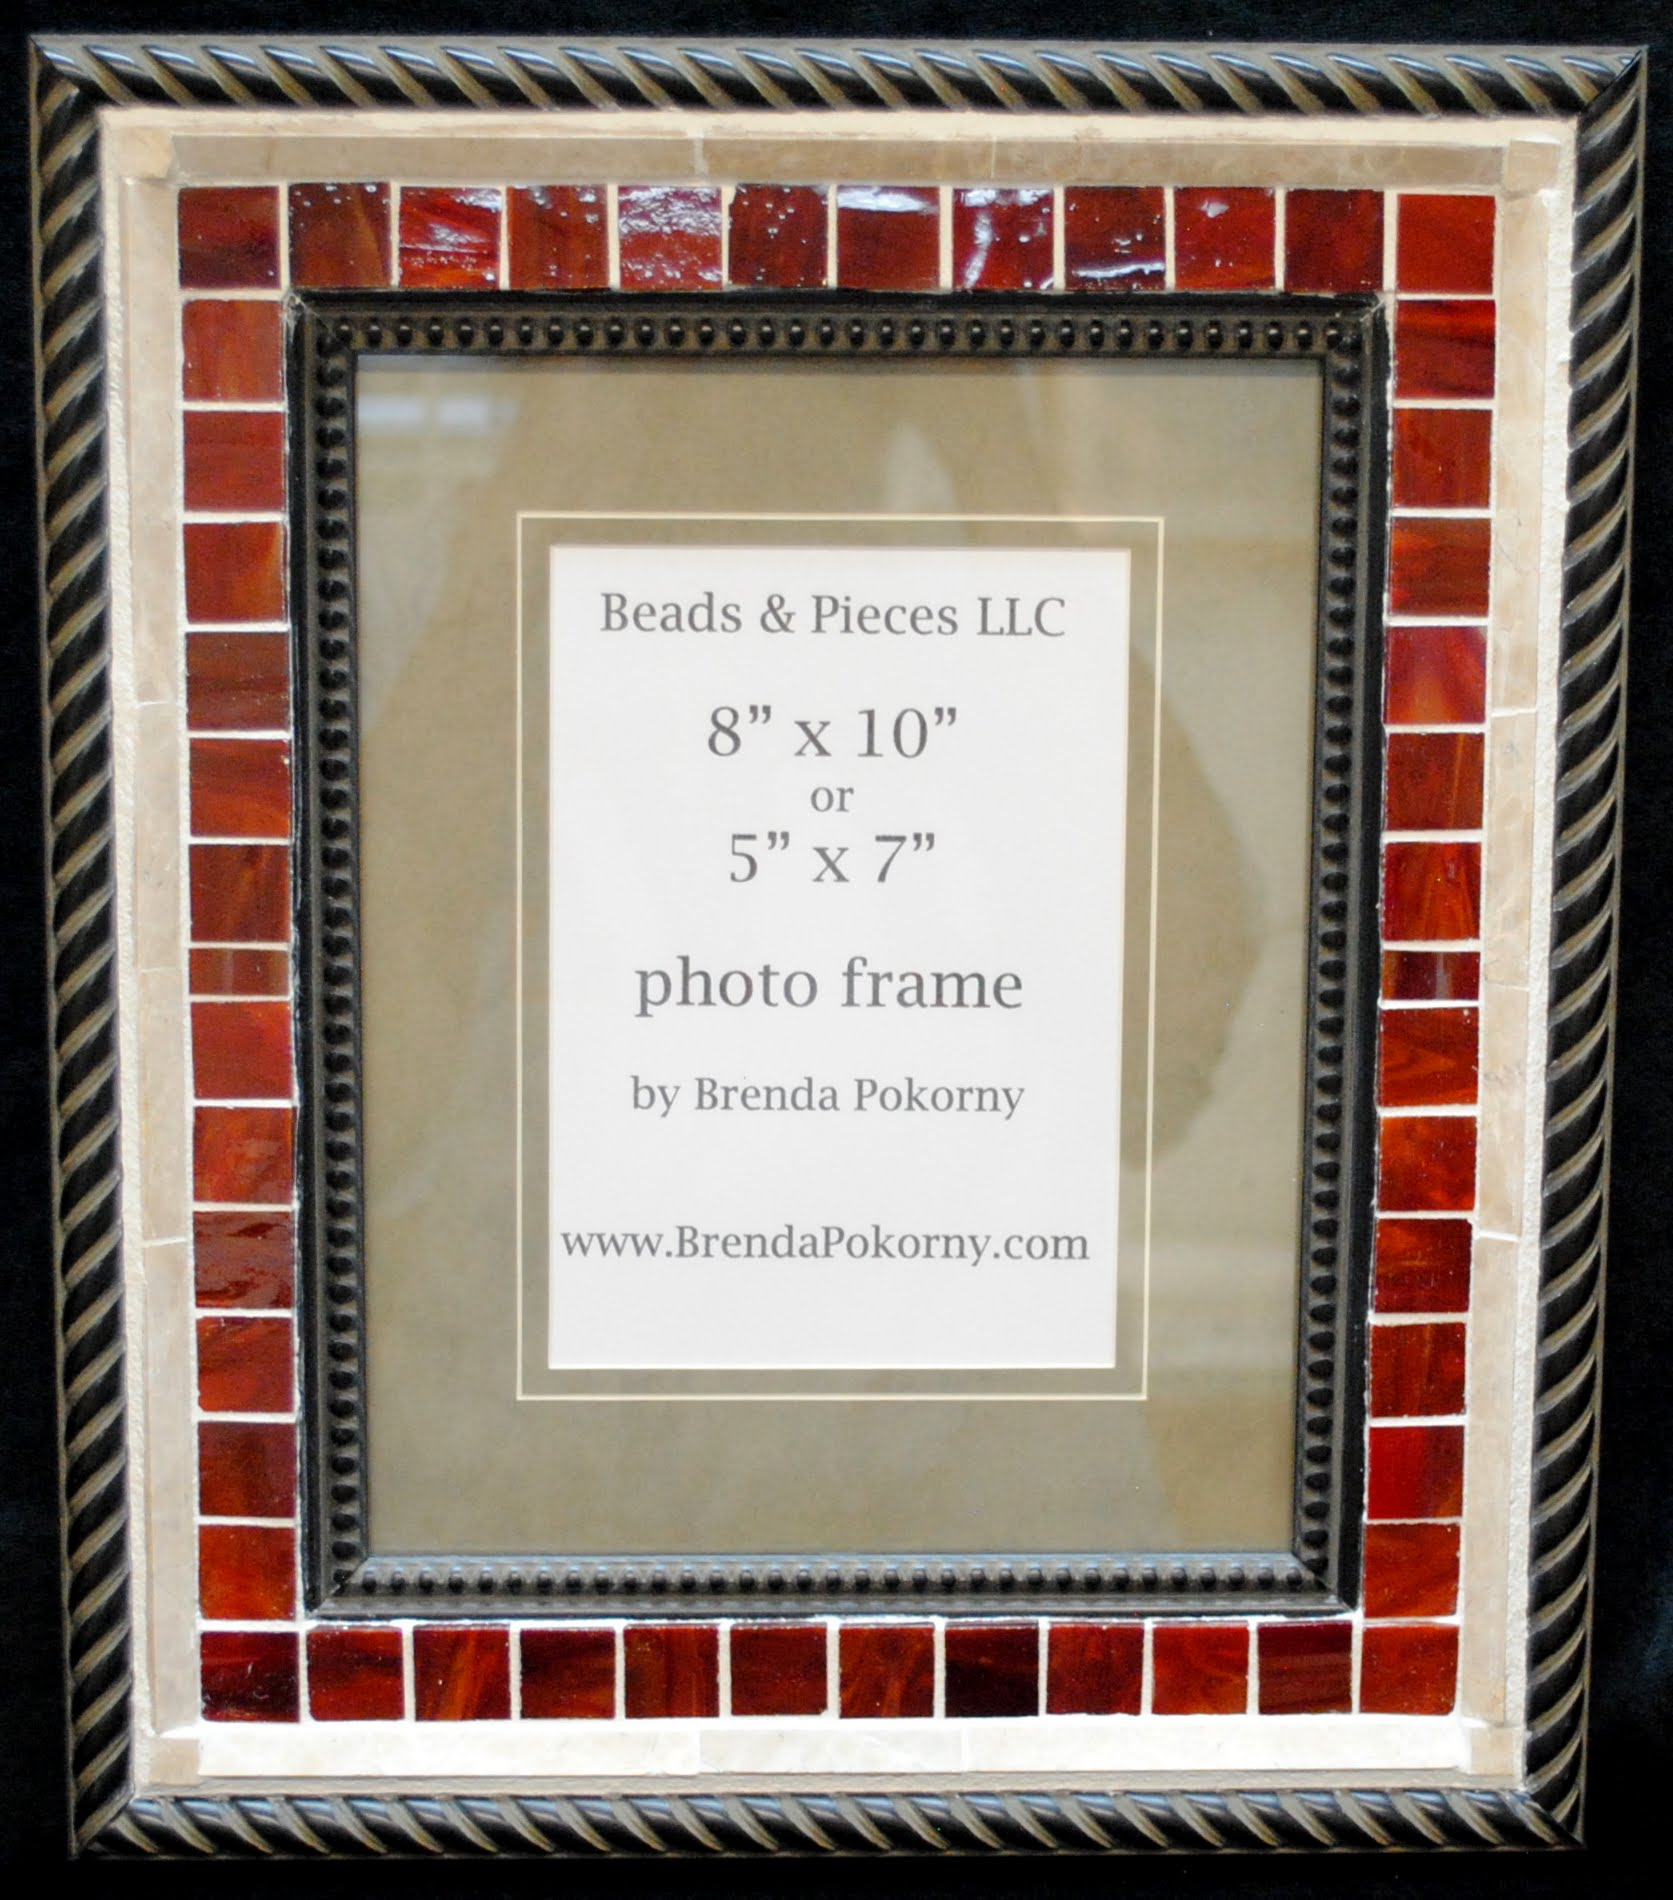 "Deep Red & Sandstone 5"" x 7"" or 8"" x 10"" Mosaic Wall Frame"